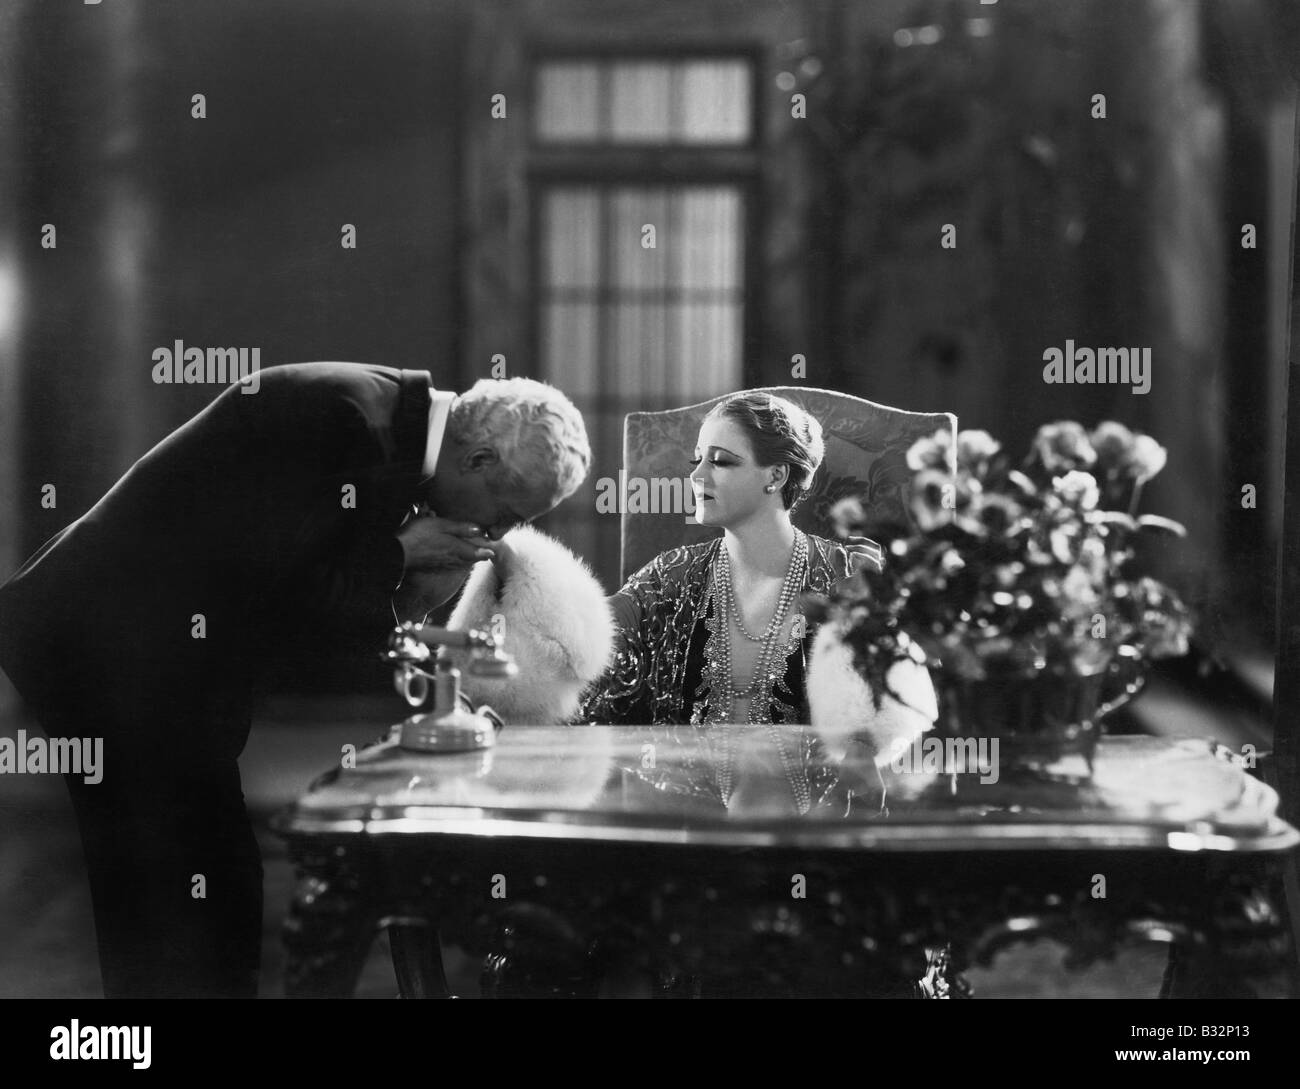 Man kissing hand of woman sitting at desk - Stock Image